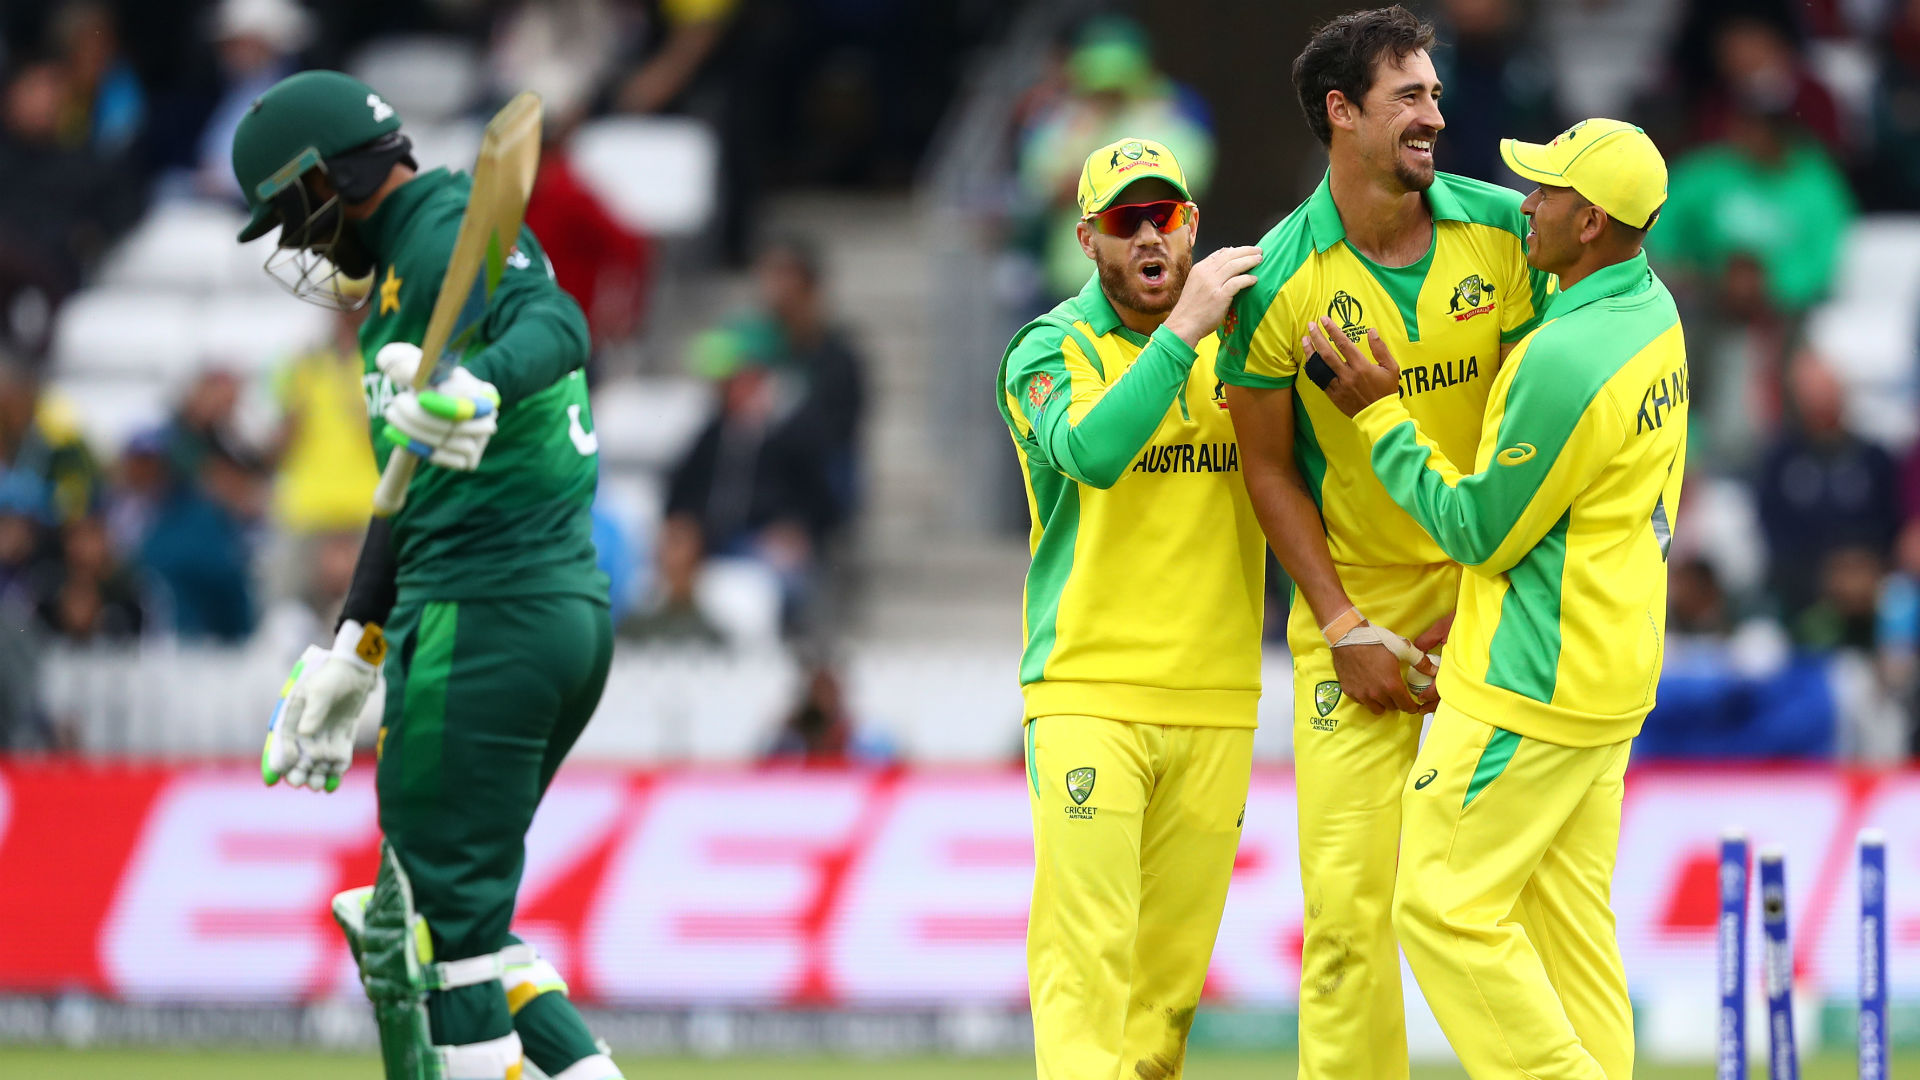 Pakistan failed to capitalise on their opportunities against Australia at Taunton and now face a fight to qualify for the semi-finals.